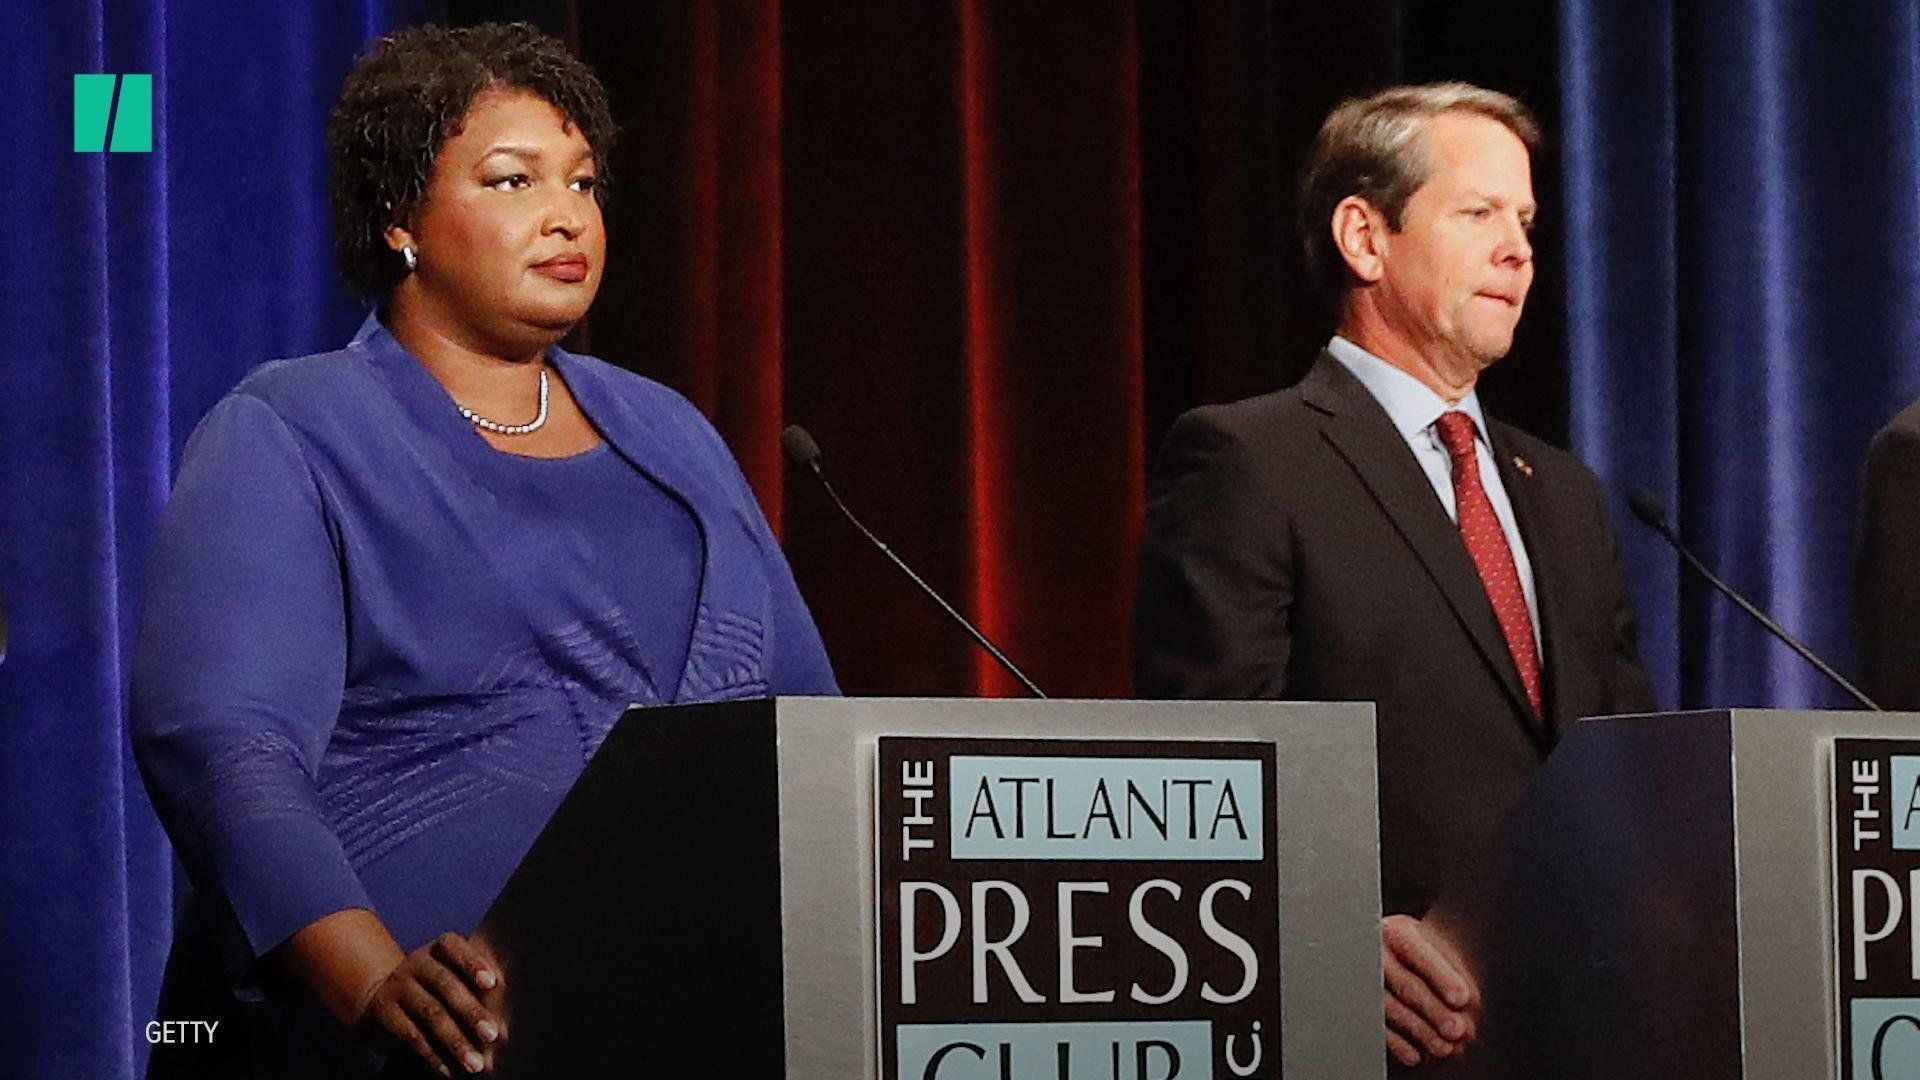 Democrat Gov. Hopeful Stacey Abrams Will Turn Georgia into Venezuela